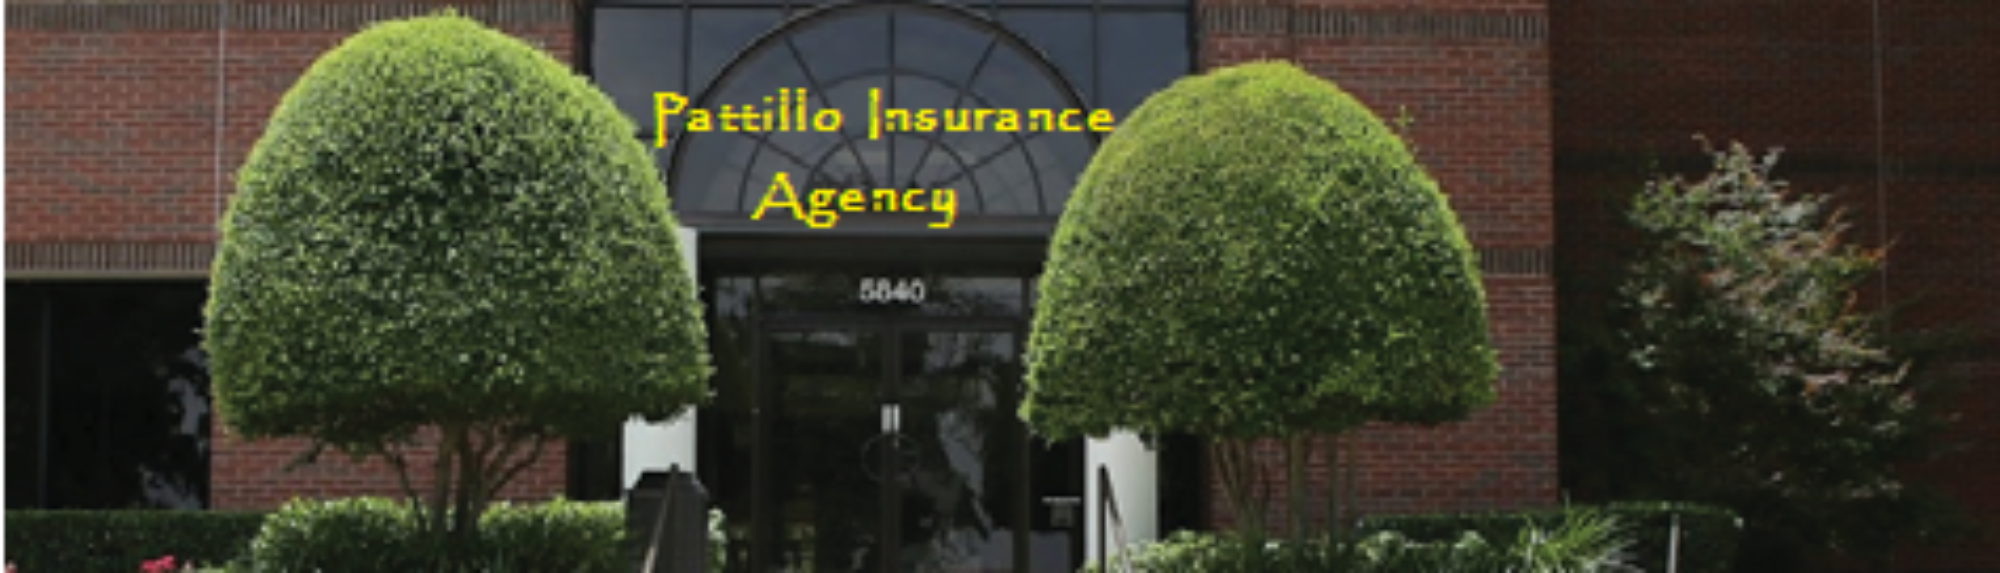 Pattillo Insurance Agency